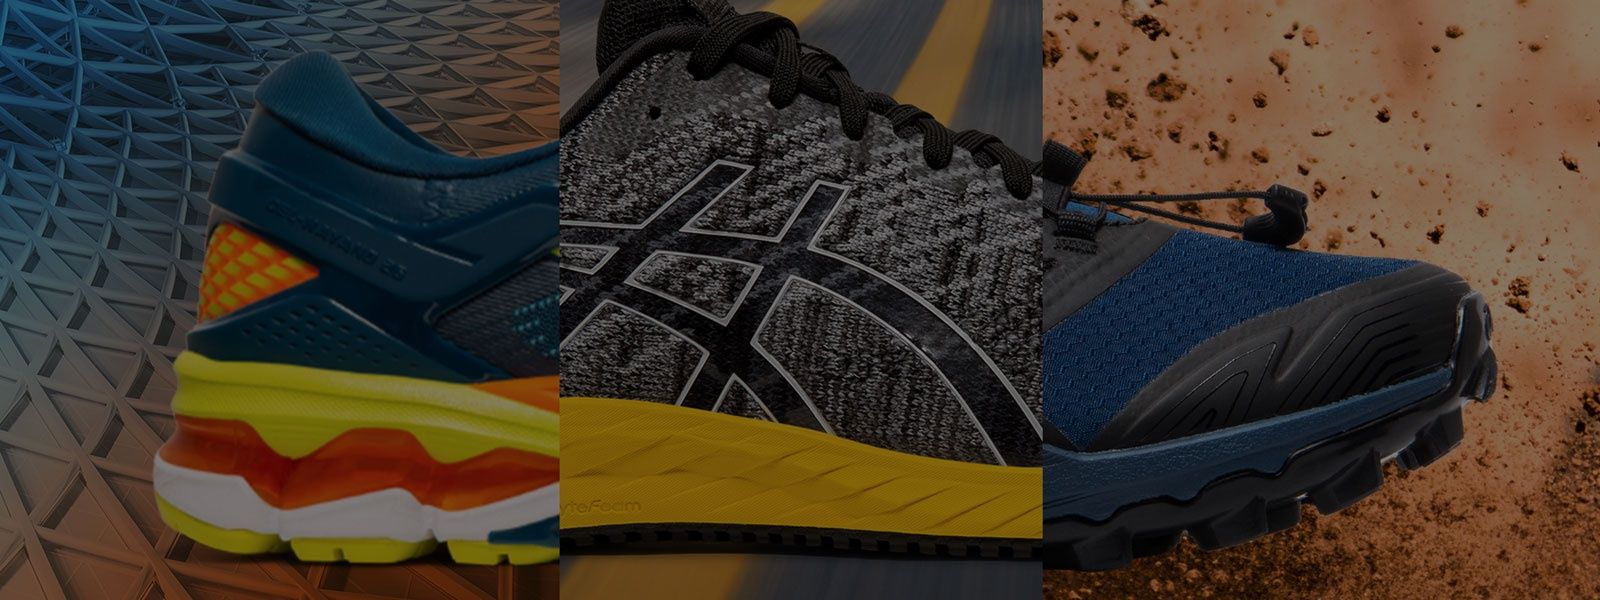 Best Shoes, Clothing, Fast Shipping, Cheap Price. Asics Gel